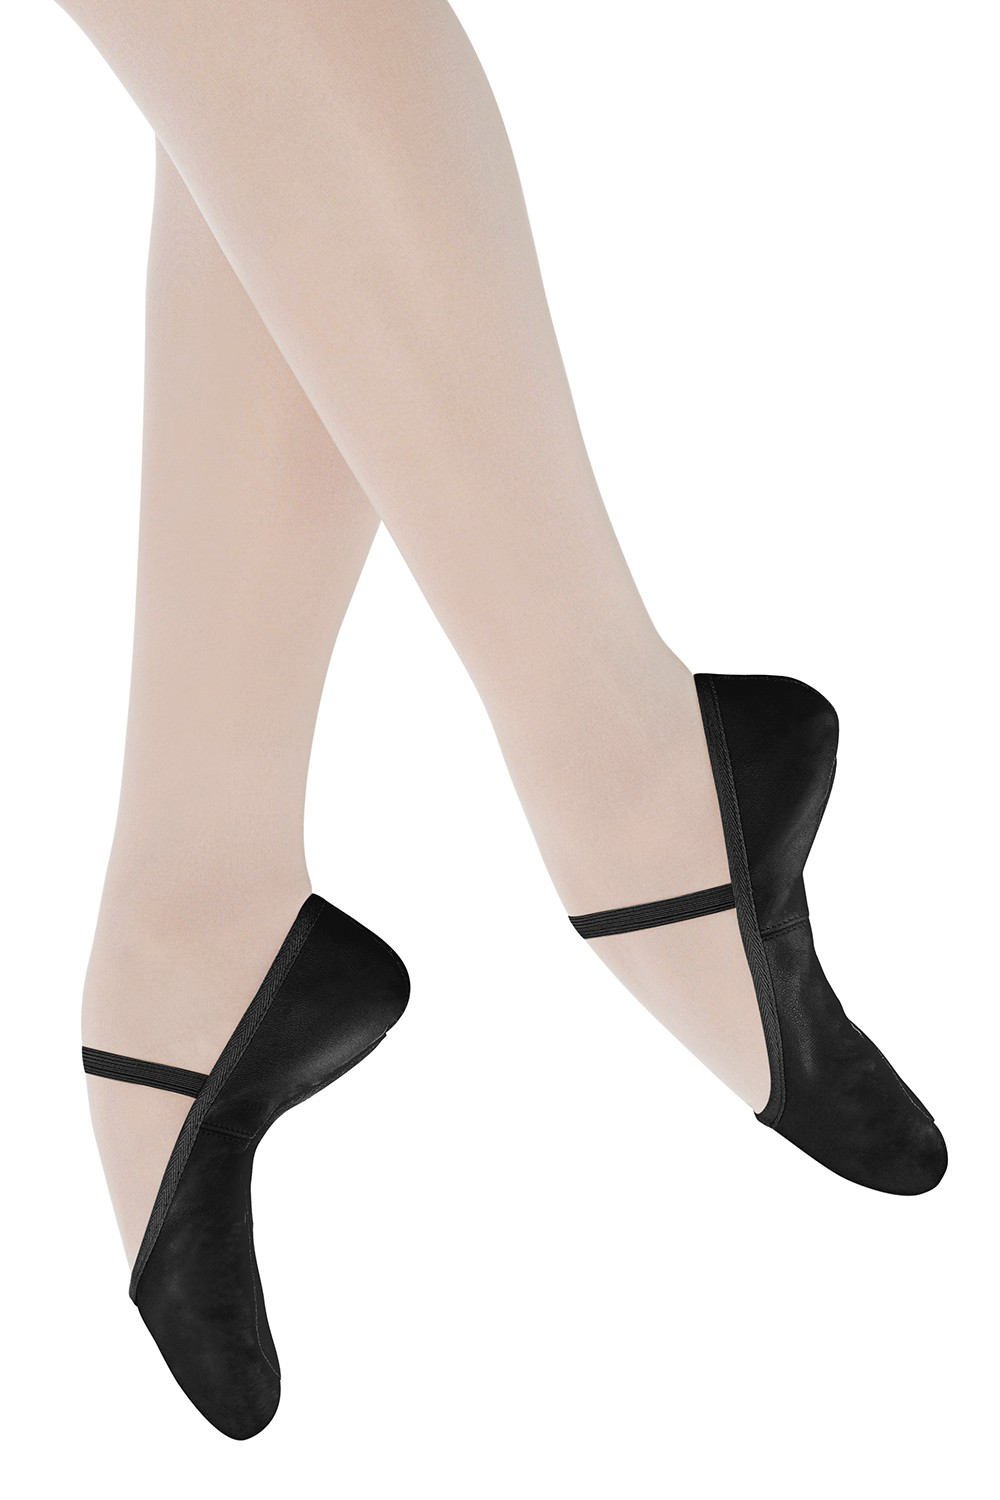 Debut I Women's Ballet Shoes